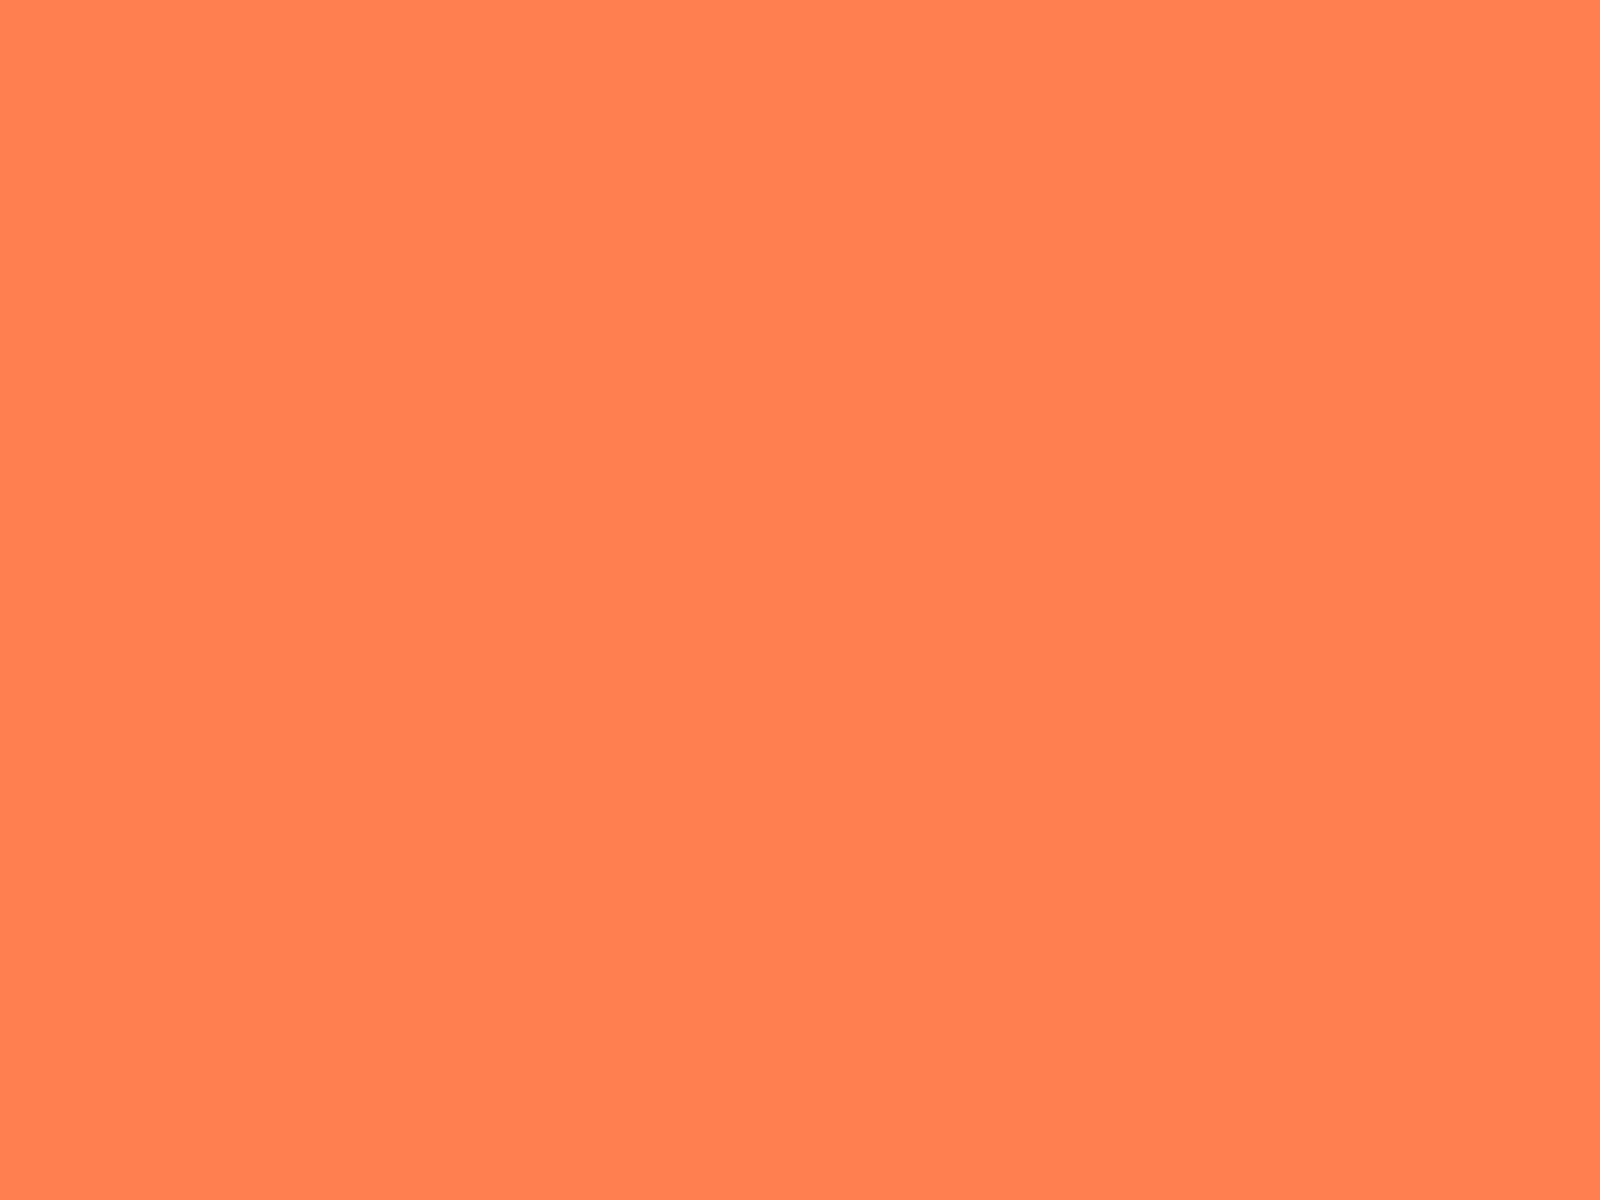 1600x1200 Coral Solid Color Background